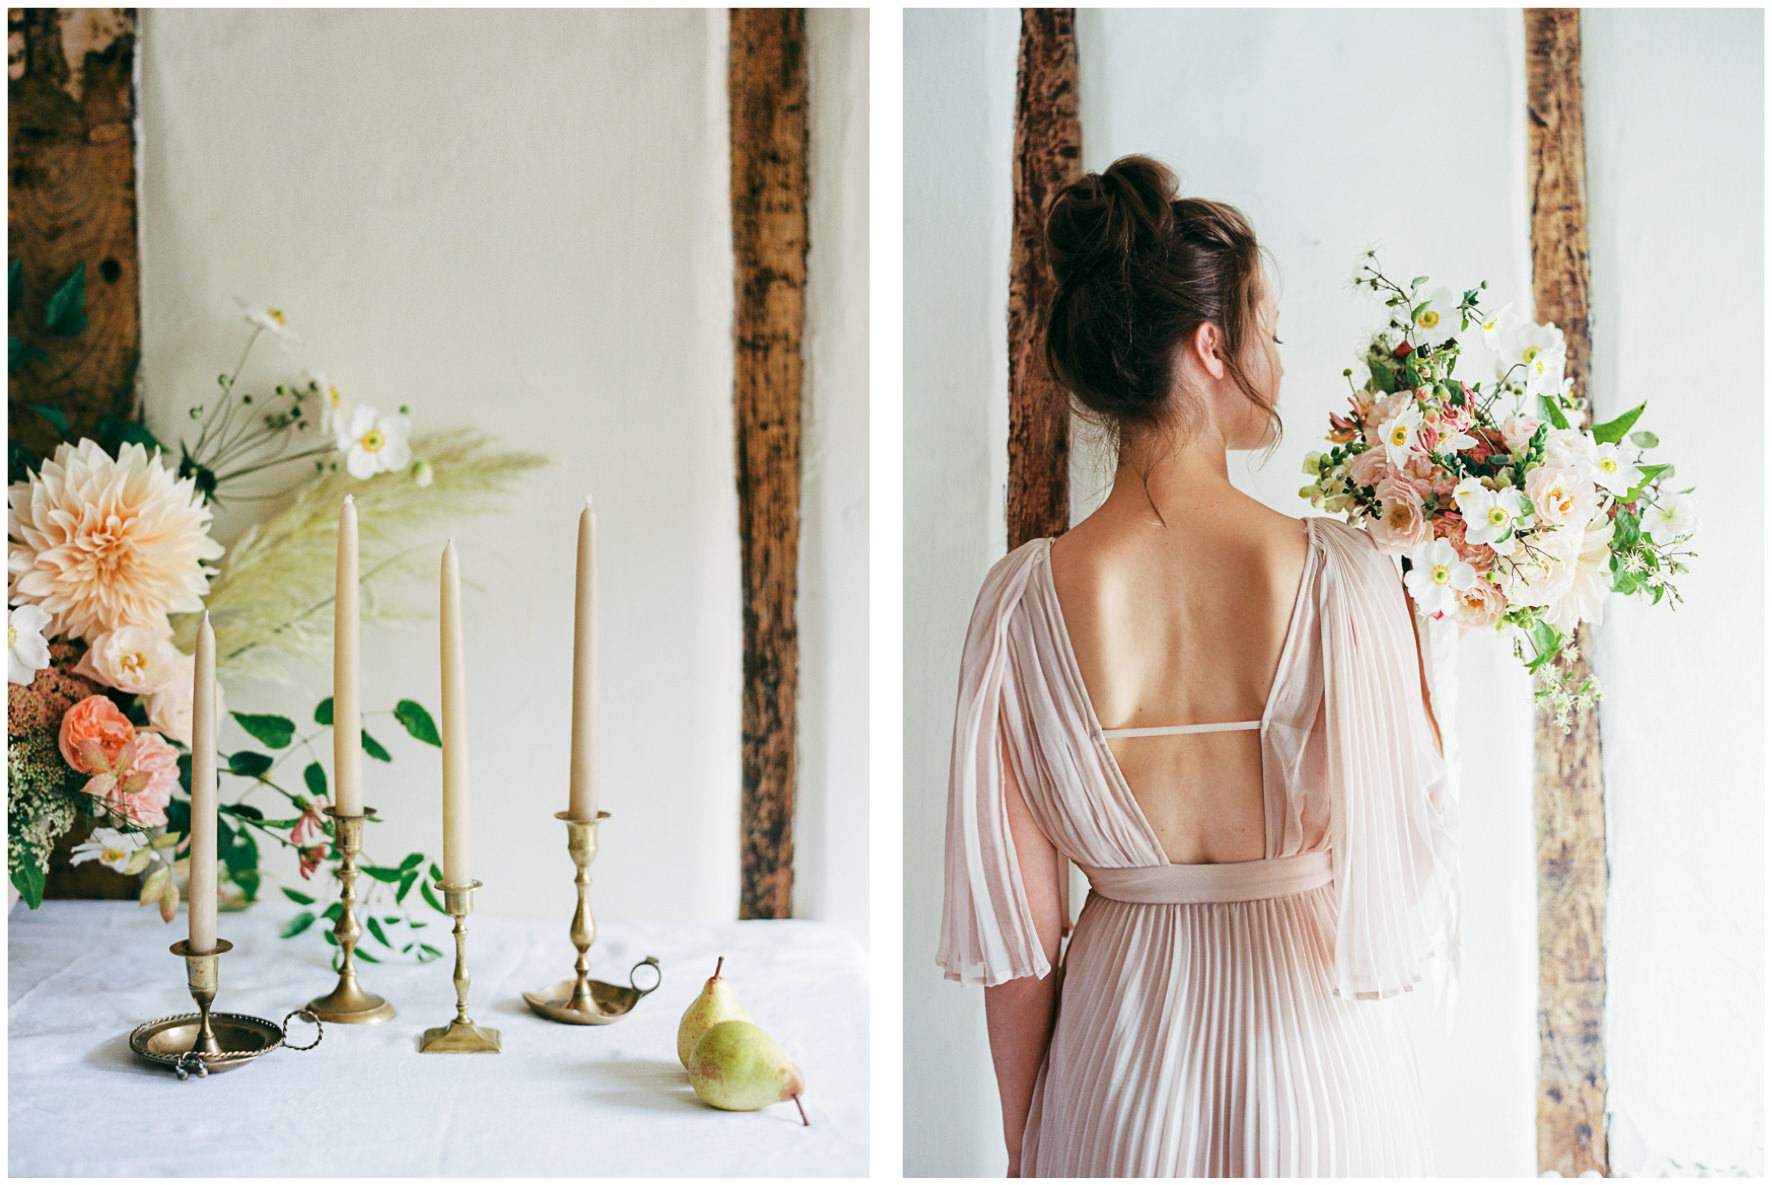 Lucy Davenport Photography, Once Wed, Home Creations, The Wedding Stylist, Verity & Thyme, tablescape, intimate dinner, wedding breakfast, florals, bouquet, coloured wedding dress